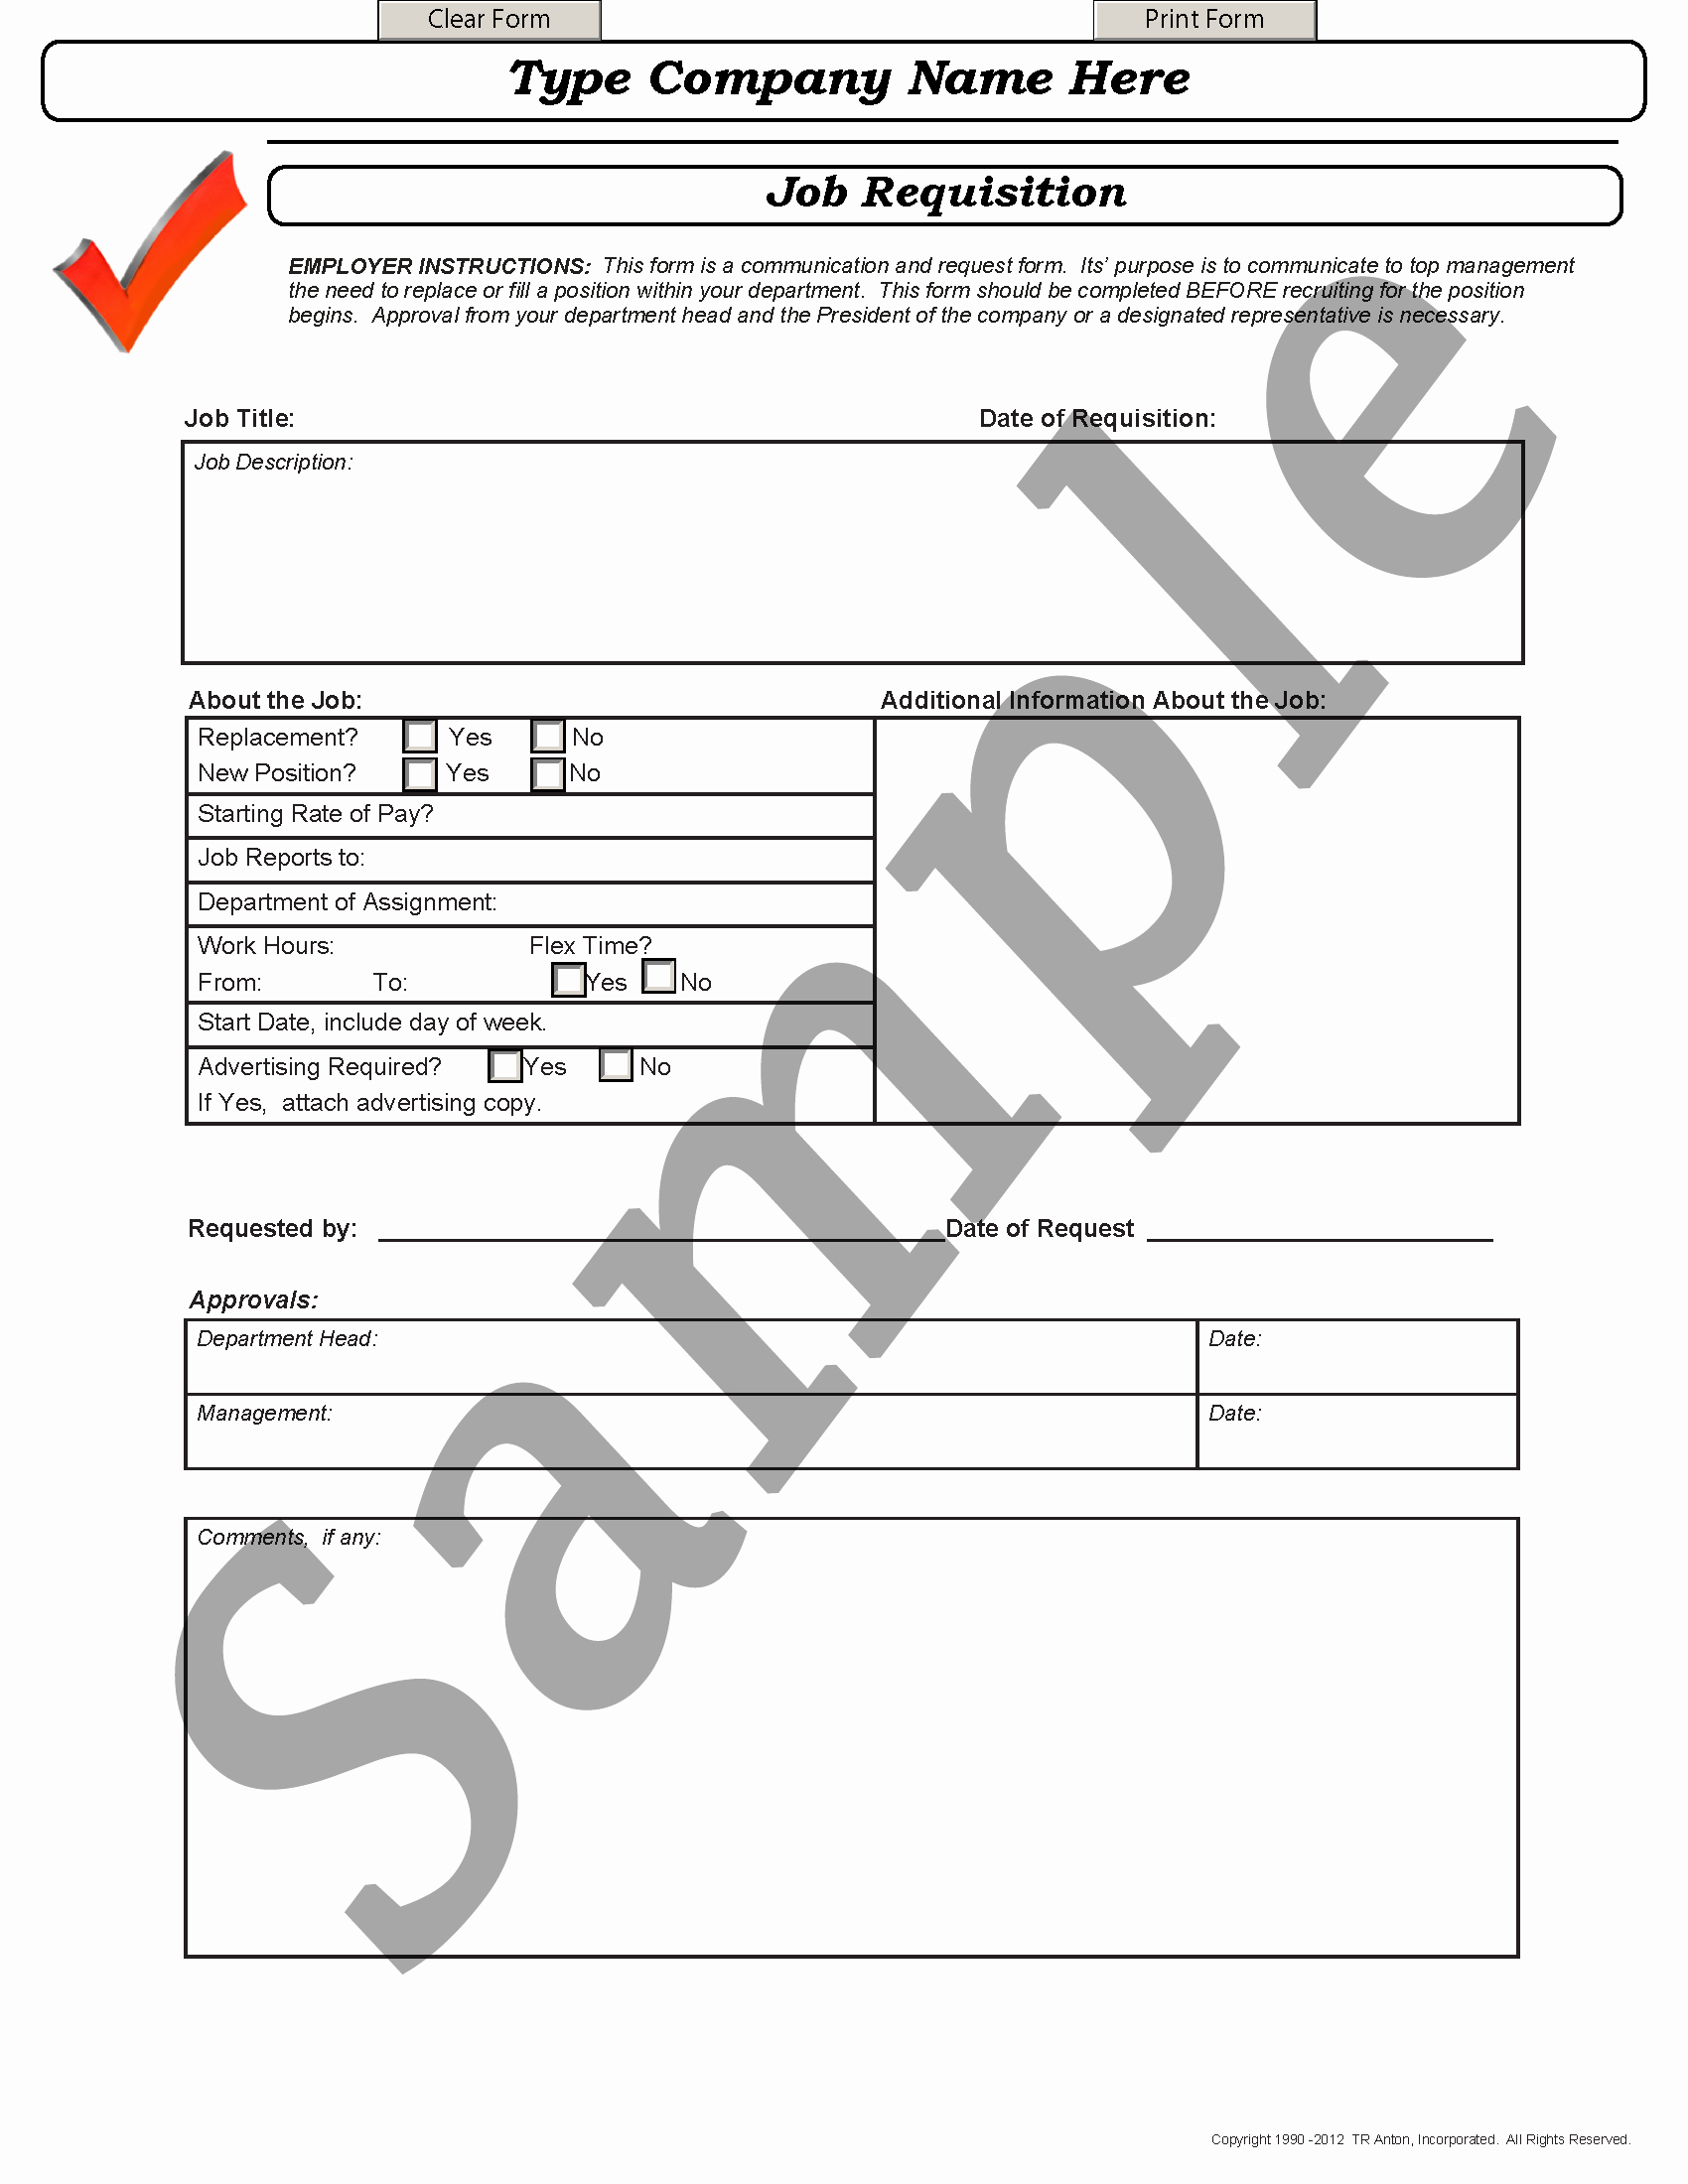 Position Requisition form Inspirational Recruitment forms and Templates Recruiter forms